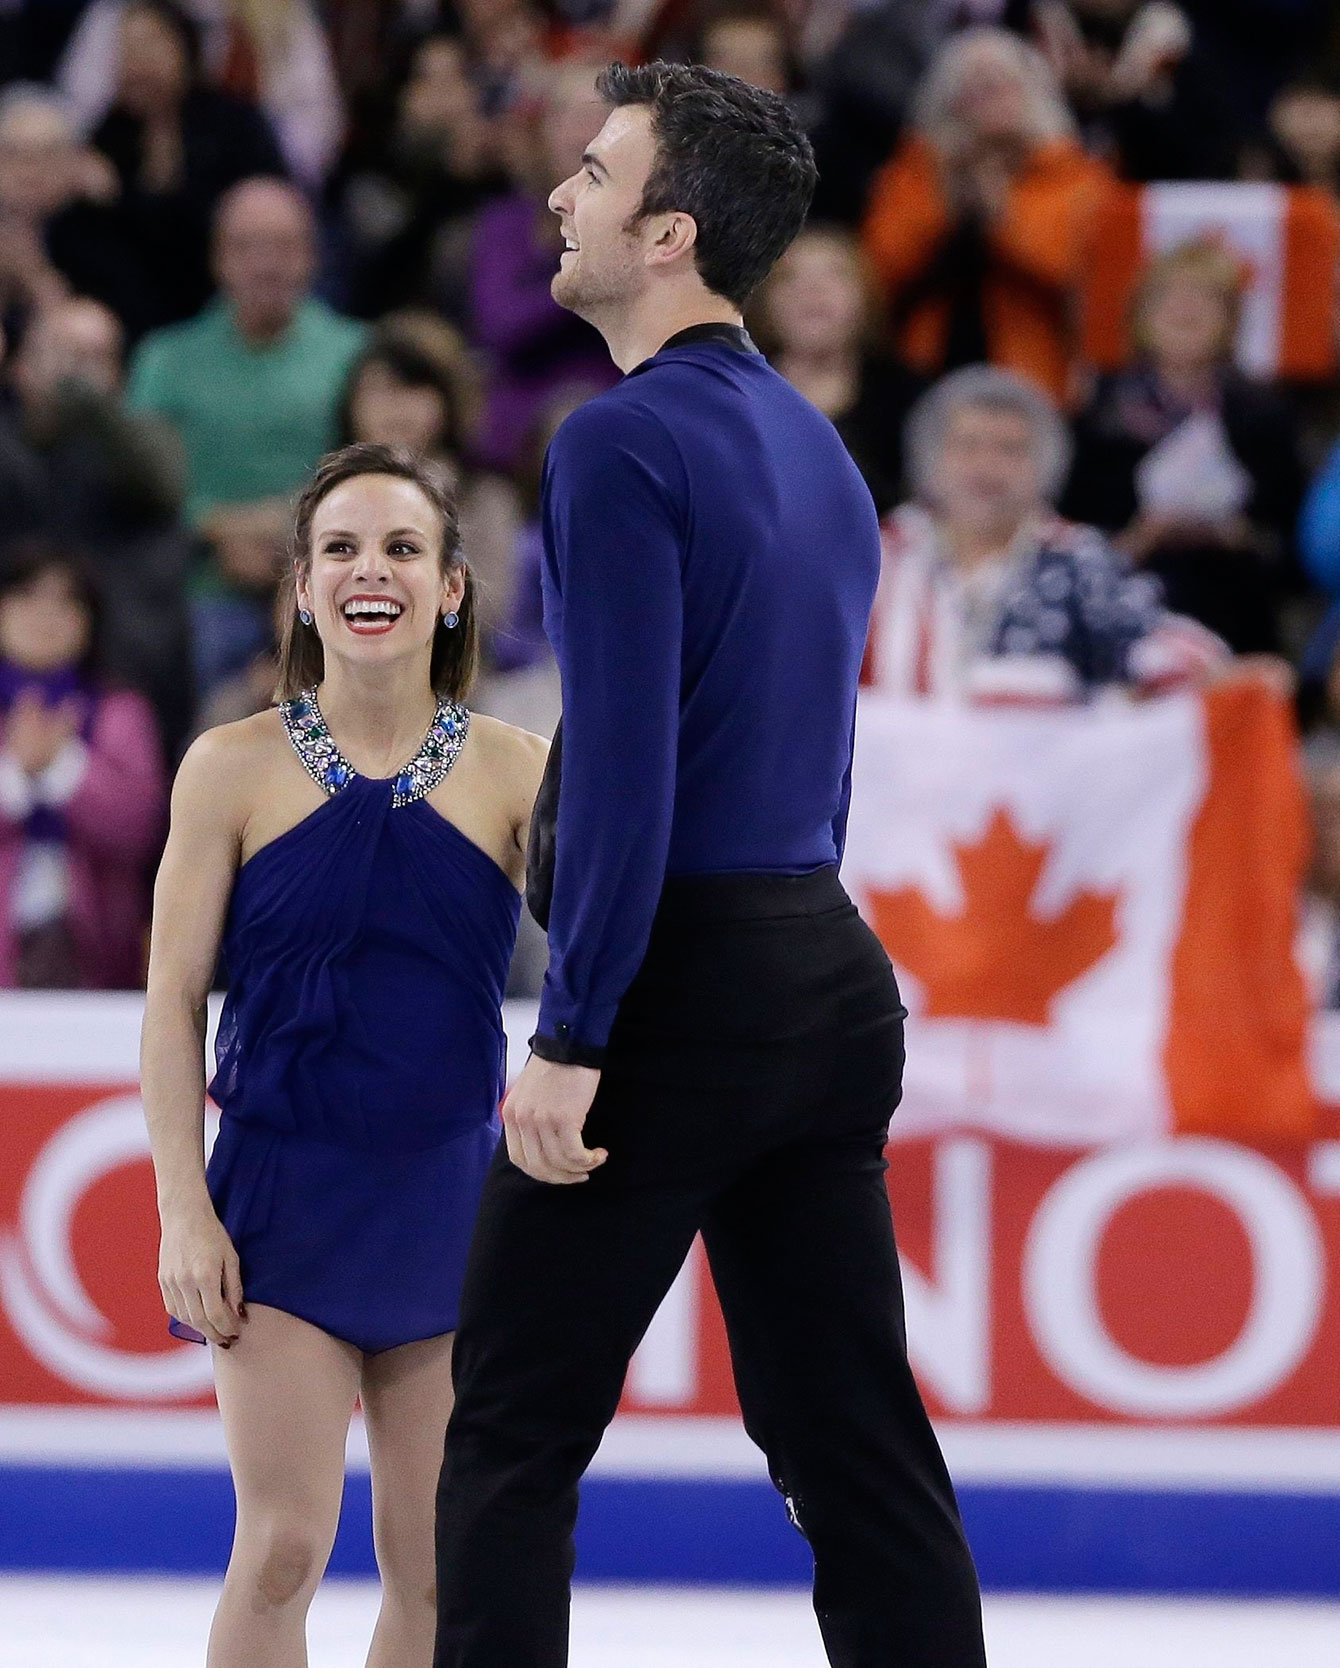 Meagan Duhamel and Eric Radford show relief after a monstrous performance in the free skate at the ISU Speed Skating World Championships on April 2, 2016.